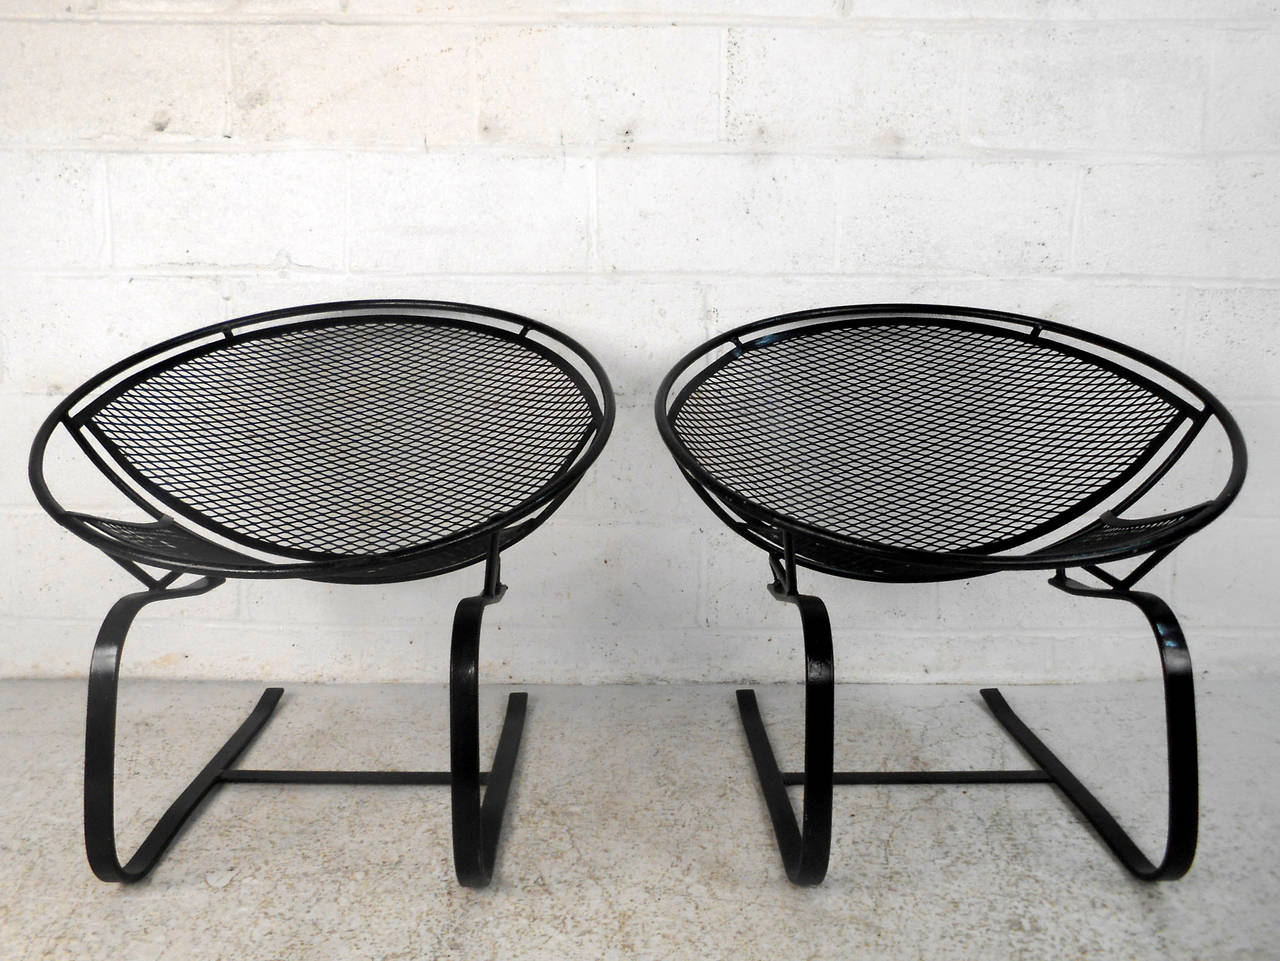 pair mid century modern iron cantilever patio chairs by tempestini for salterini 3 - Modern Iron Patio Furniture